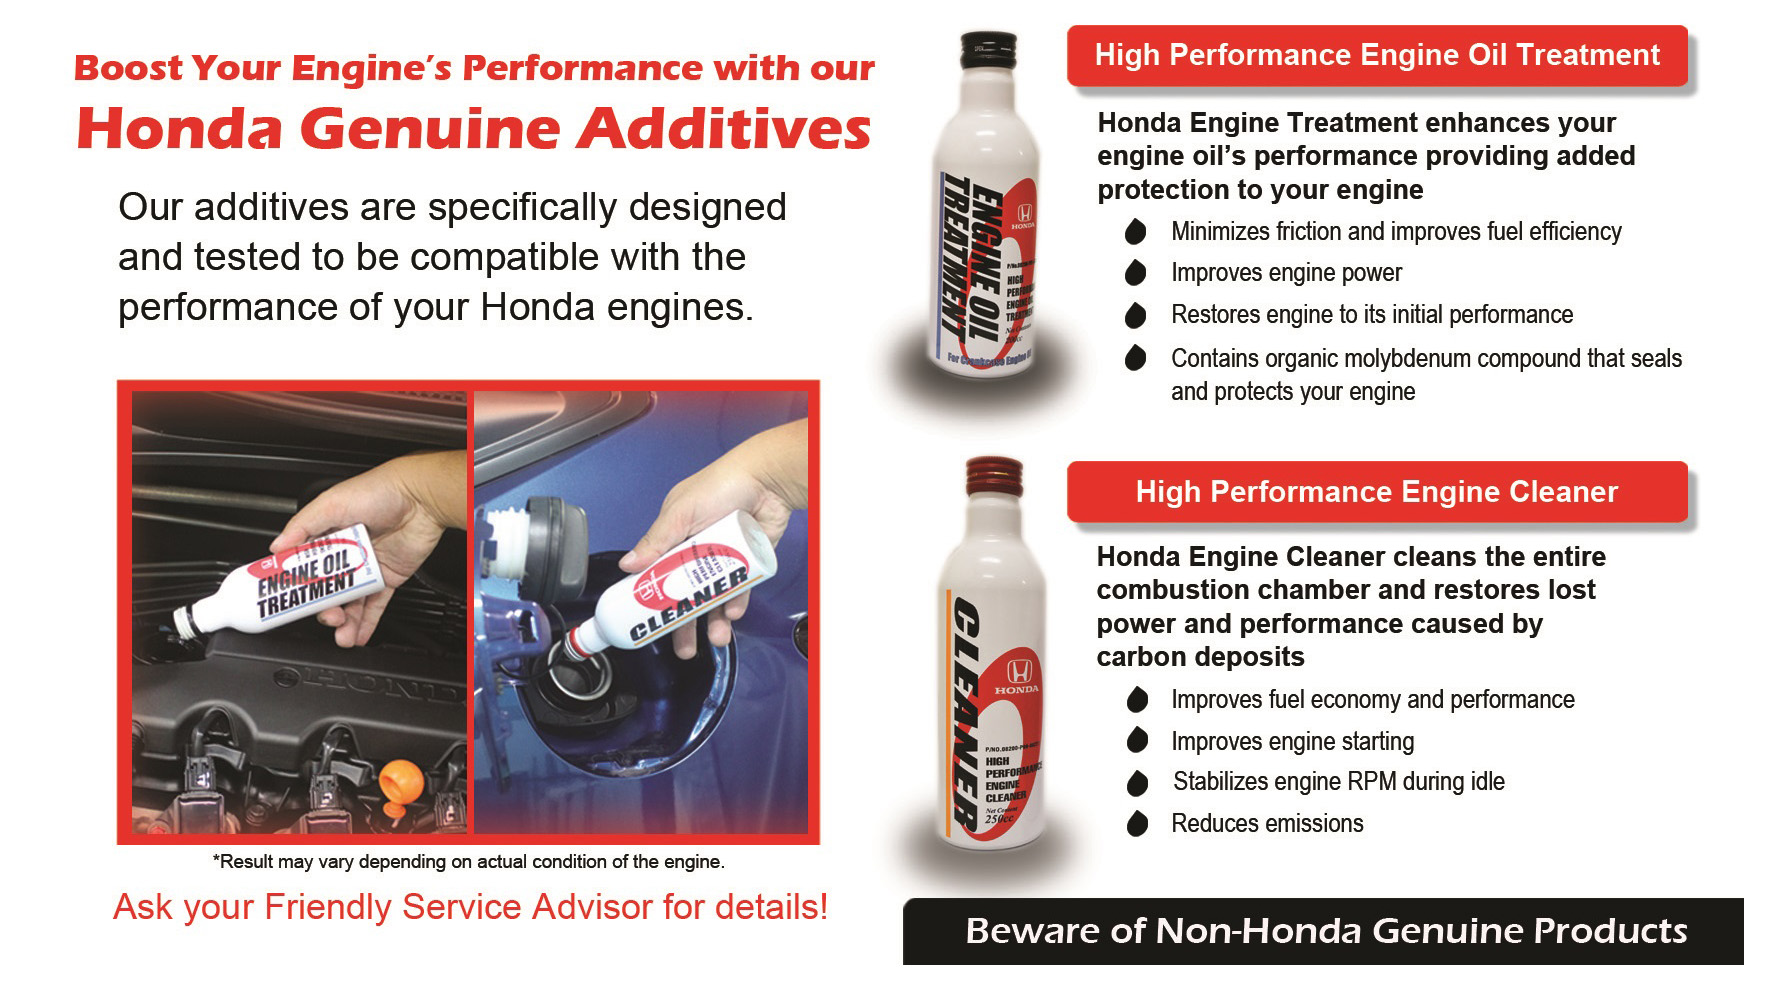 Honda Genuine Additives